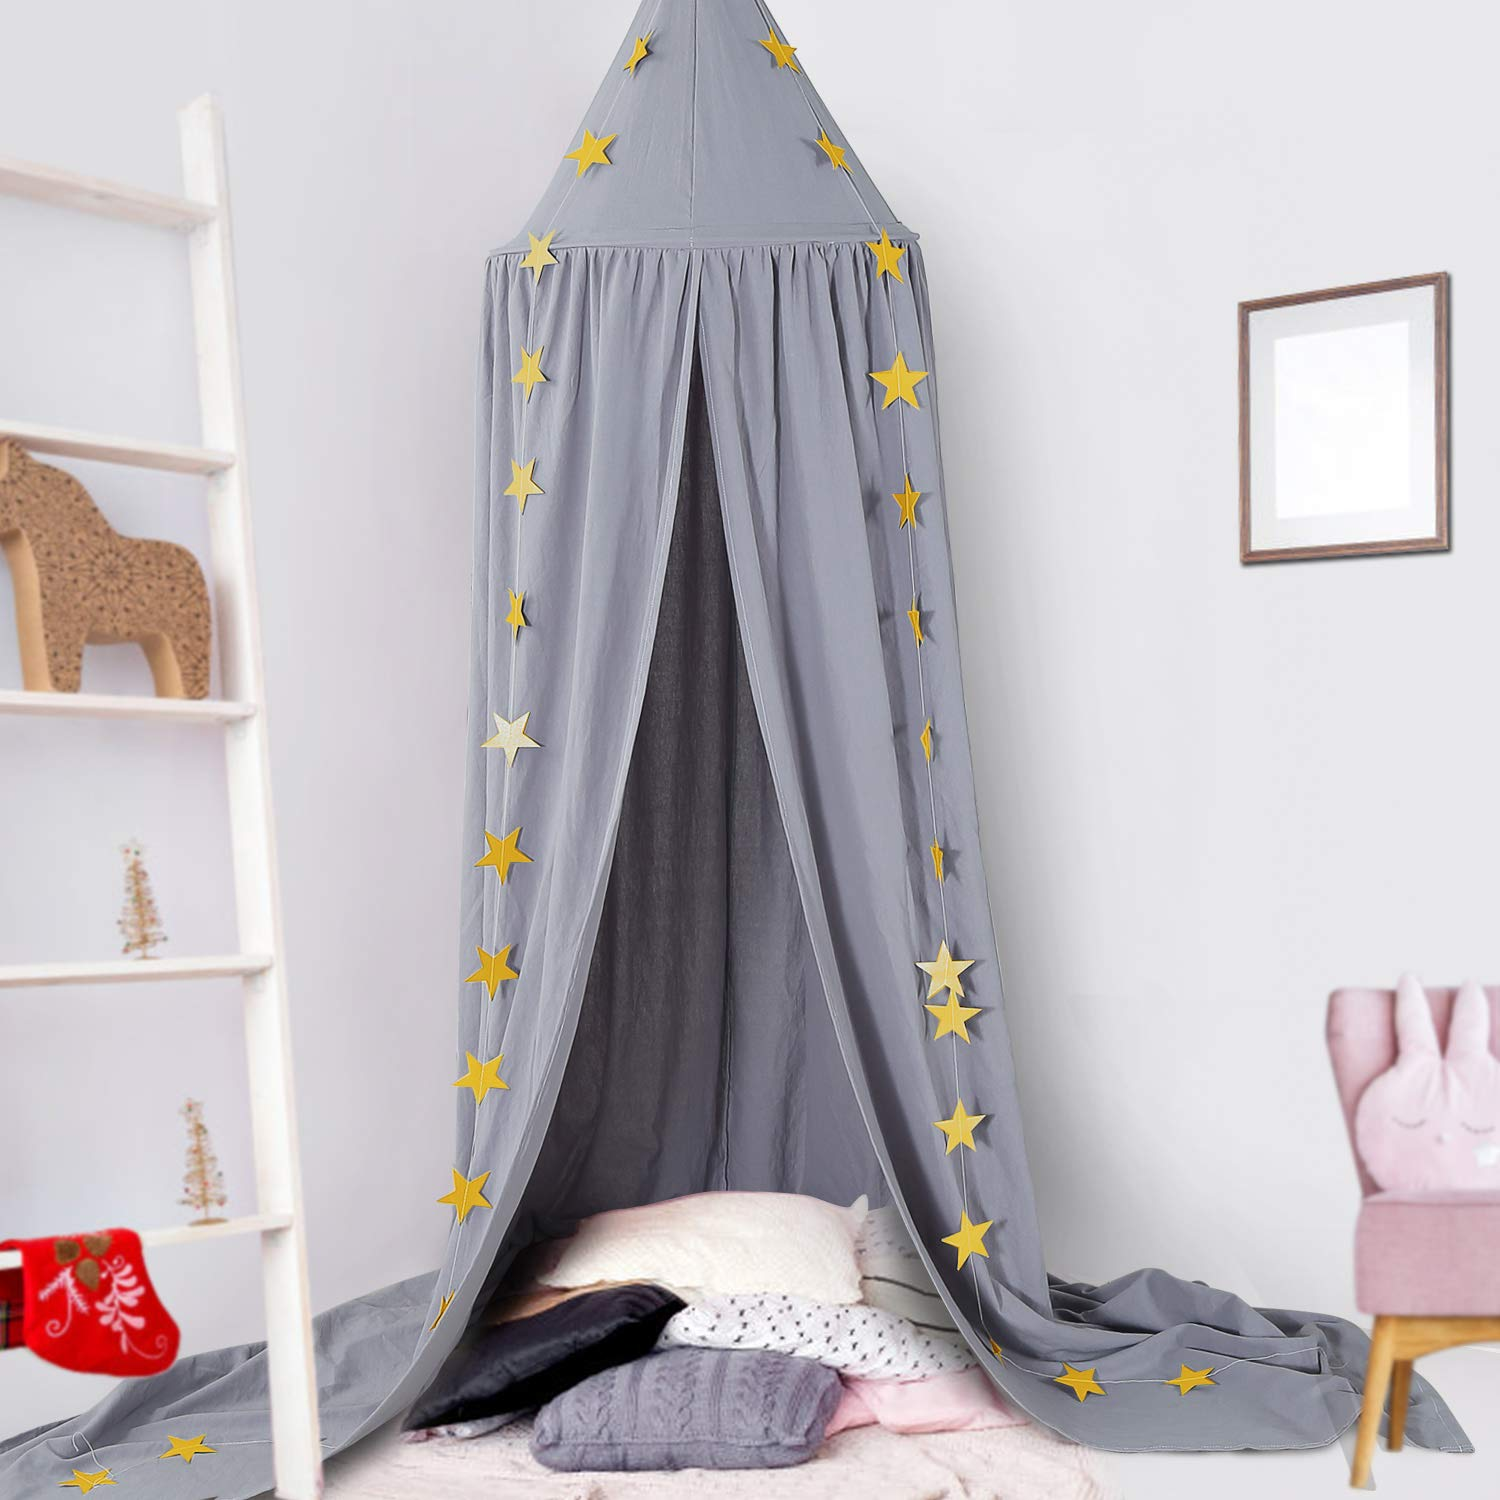 Ceekii Canopy for Girls Bed, Round Dome Hook Cotton Princess Mosquito Net Canopy Kids Bedroom Games Reading Tent Nursery Play Room Decor (Gray)